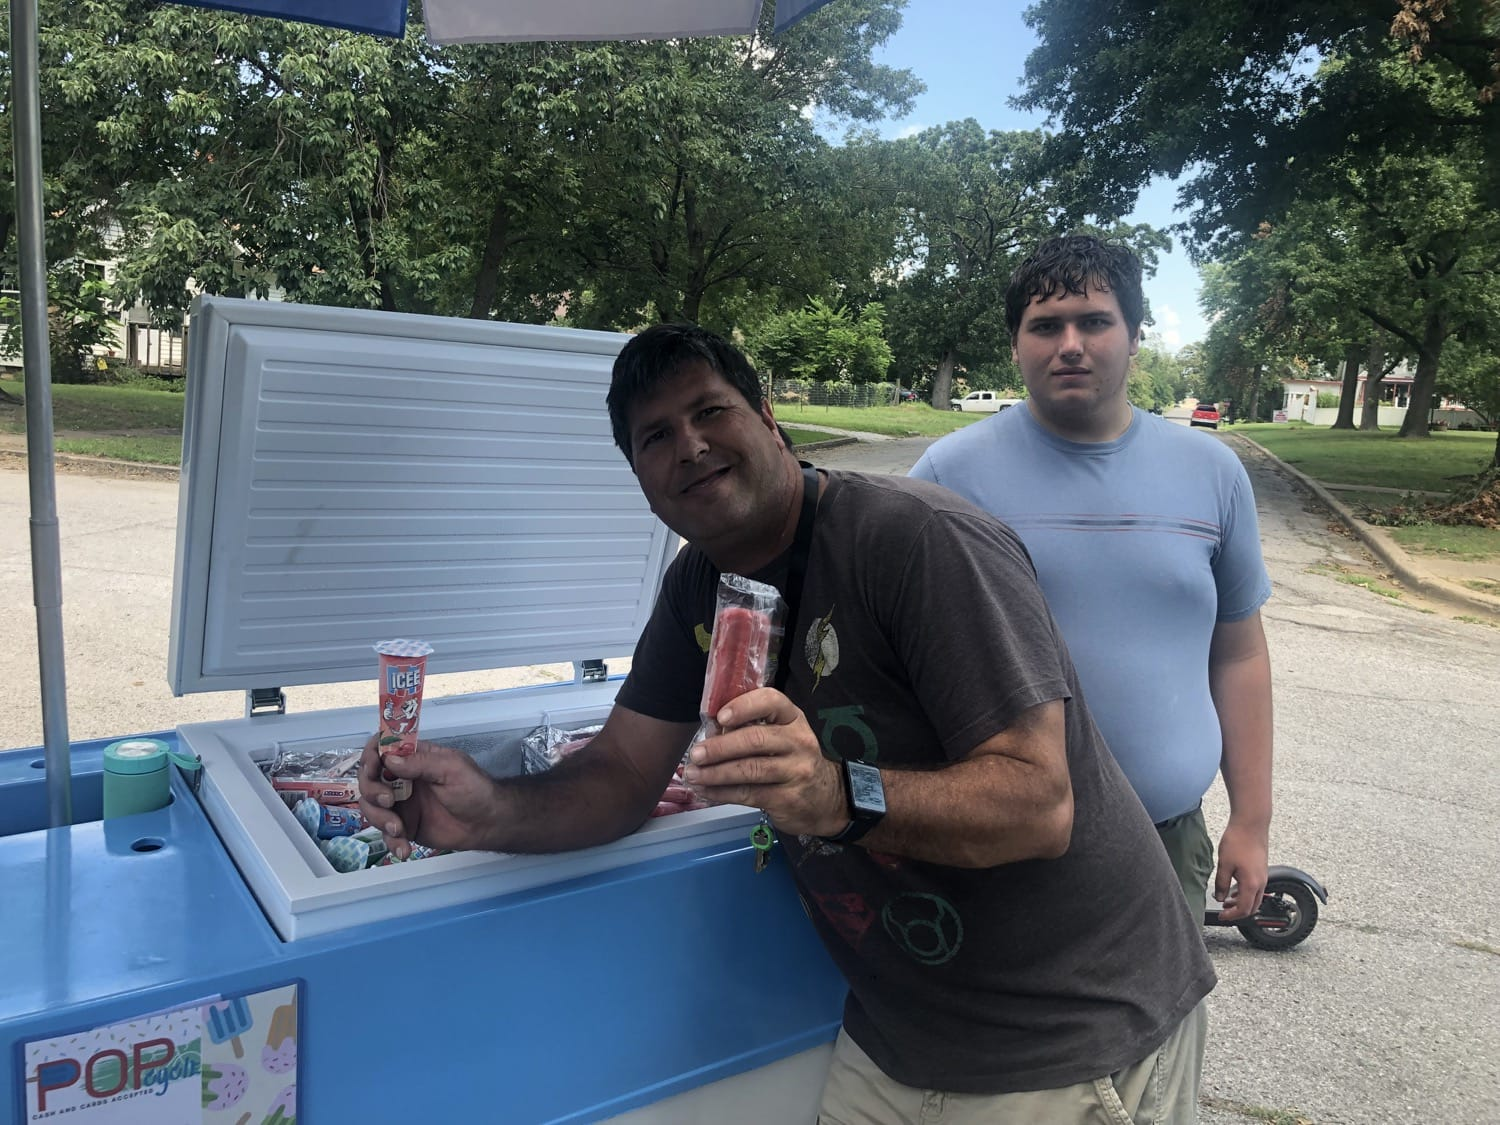 Frederic Moseley Jr. stands with his son Jeremy as he shows off treats at his new Popcycle, which he says is Oklahoma's only one.